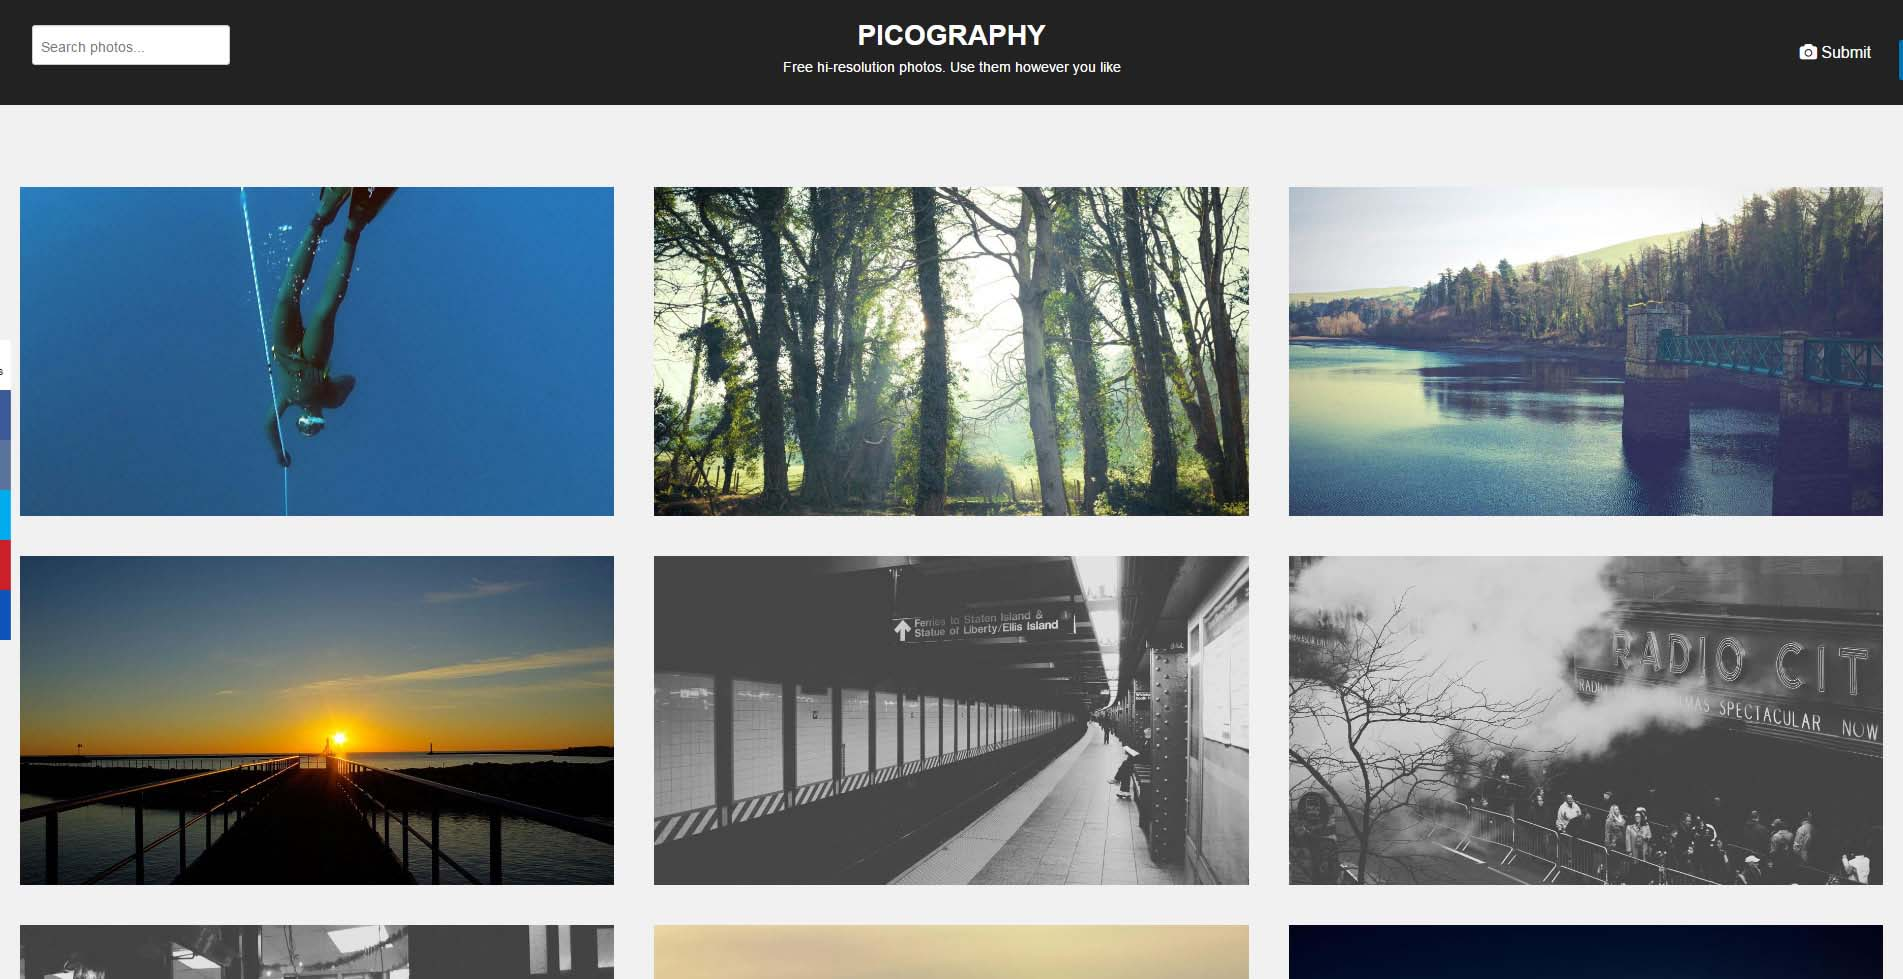 Picography Free Stock Photos for your Website